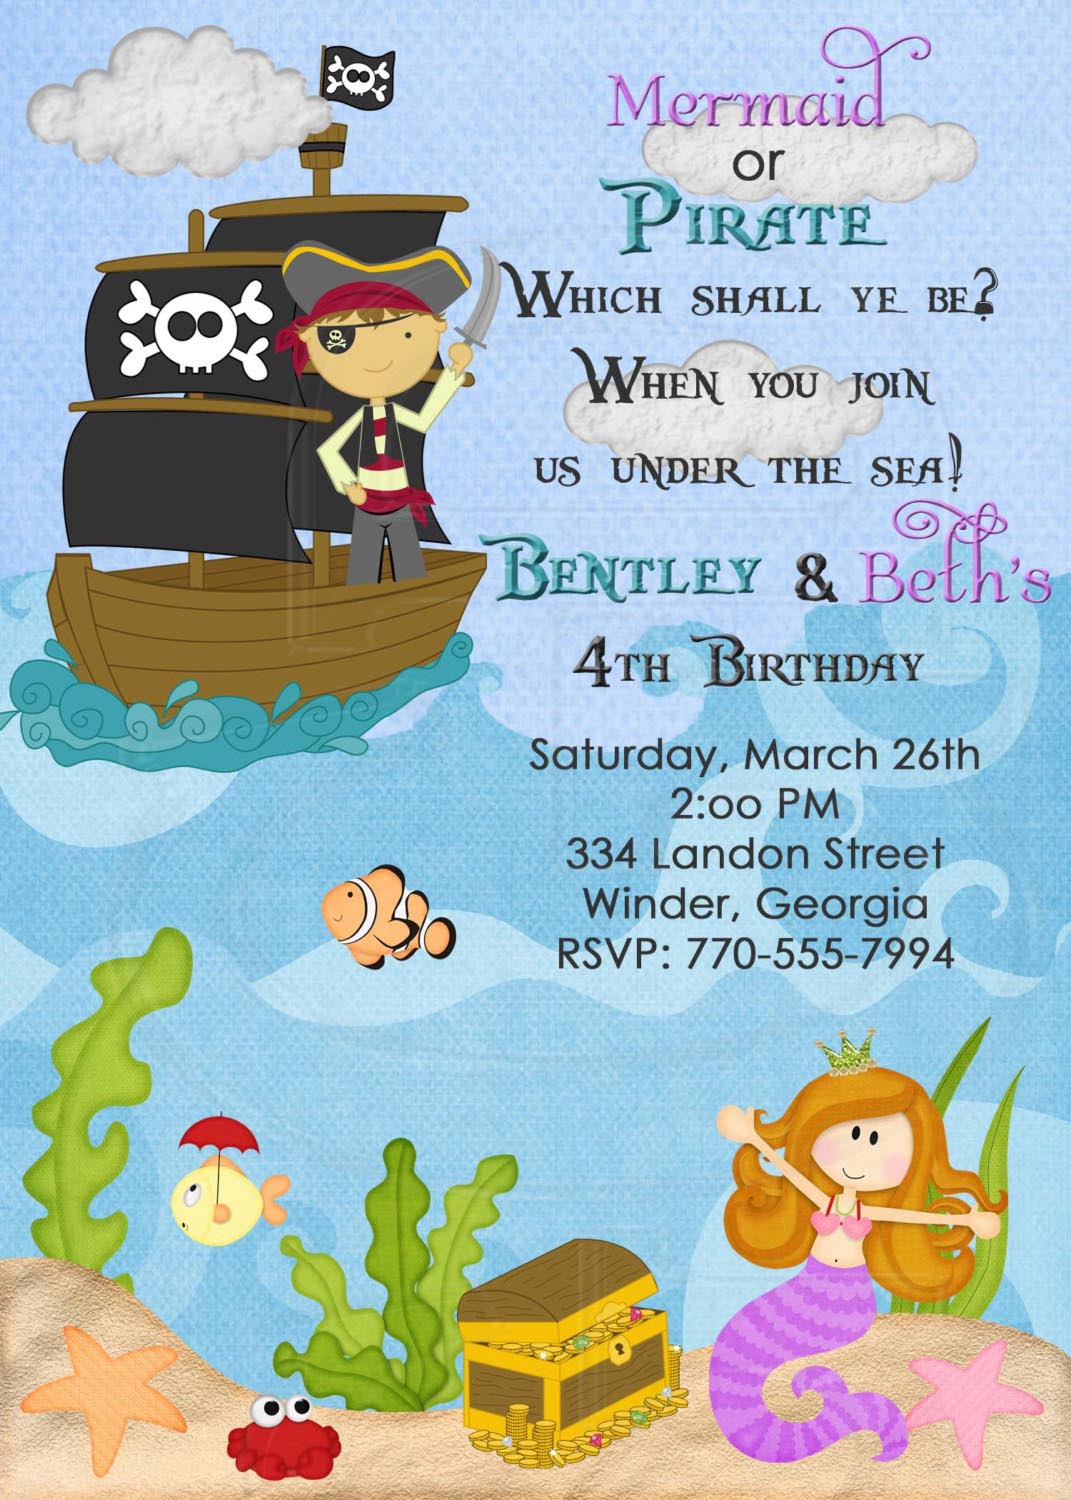 Pirate and Mermaid Party Invitations